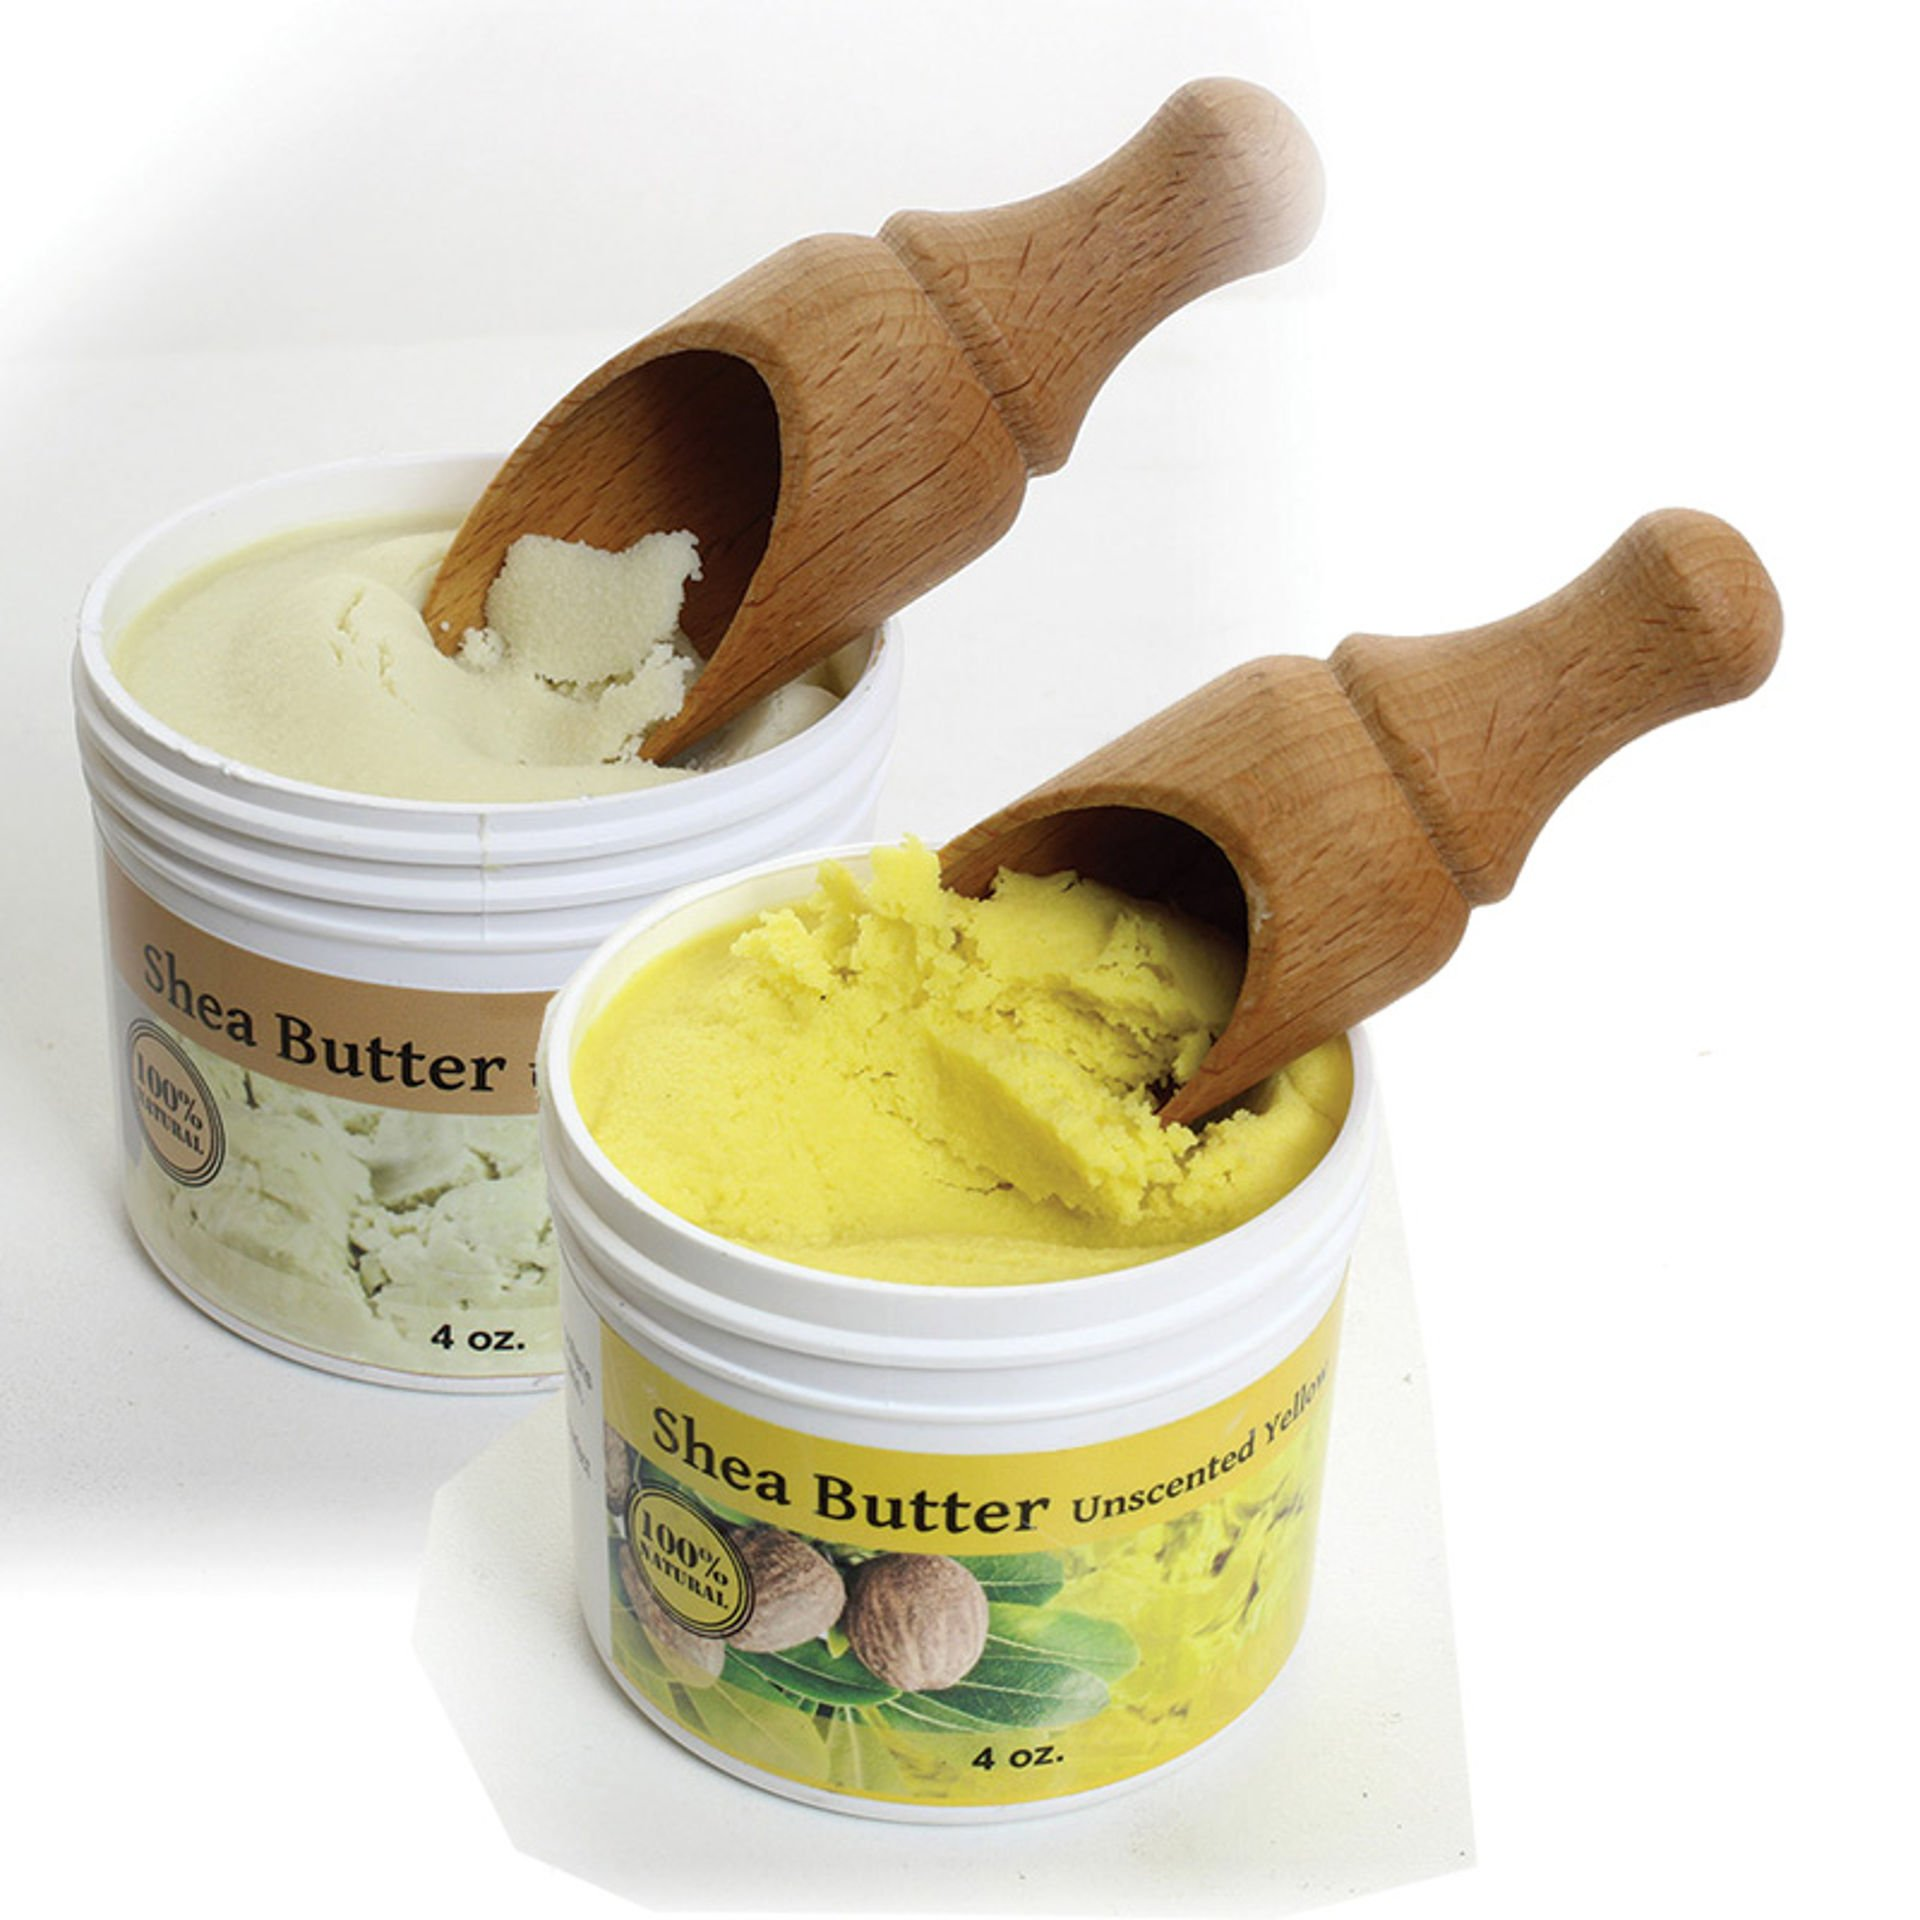 Picture of Shea Butter: 4 oz.